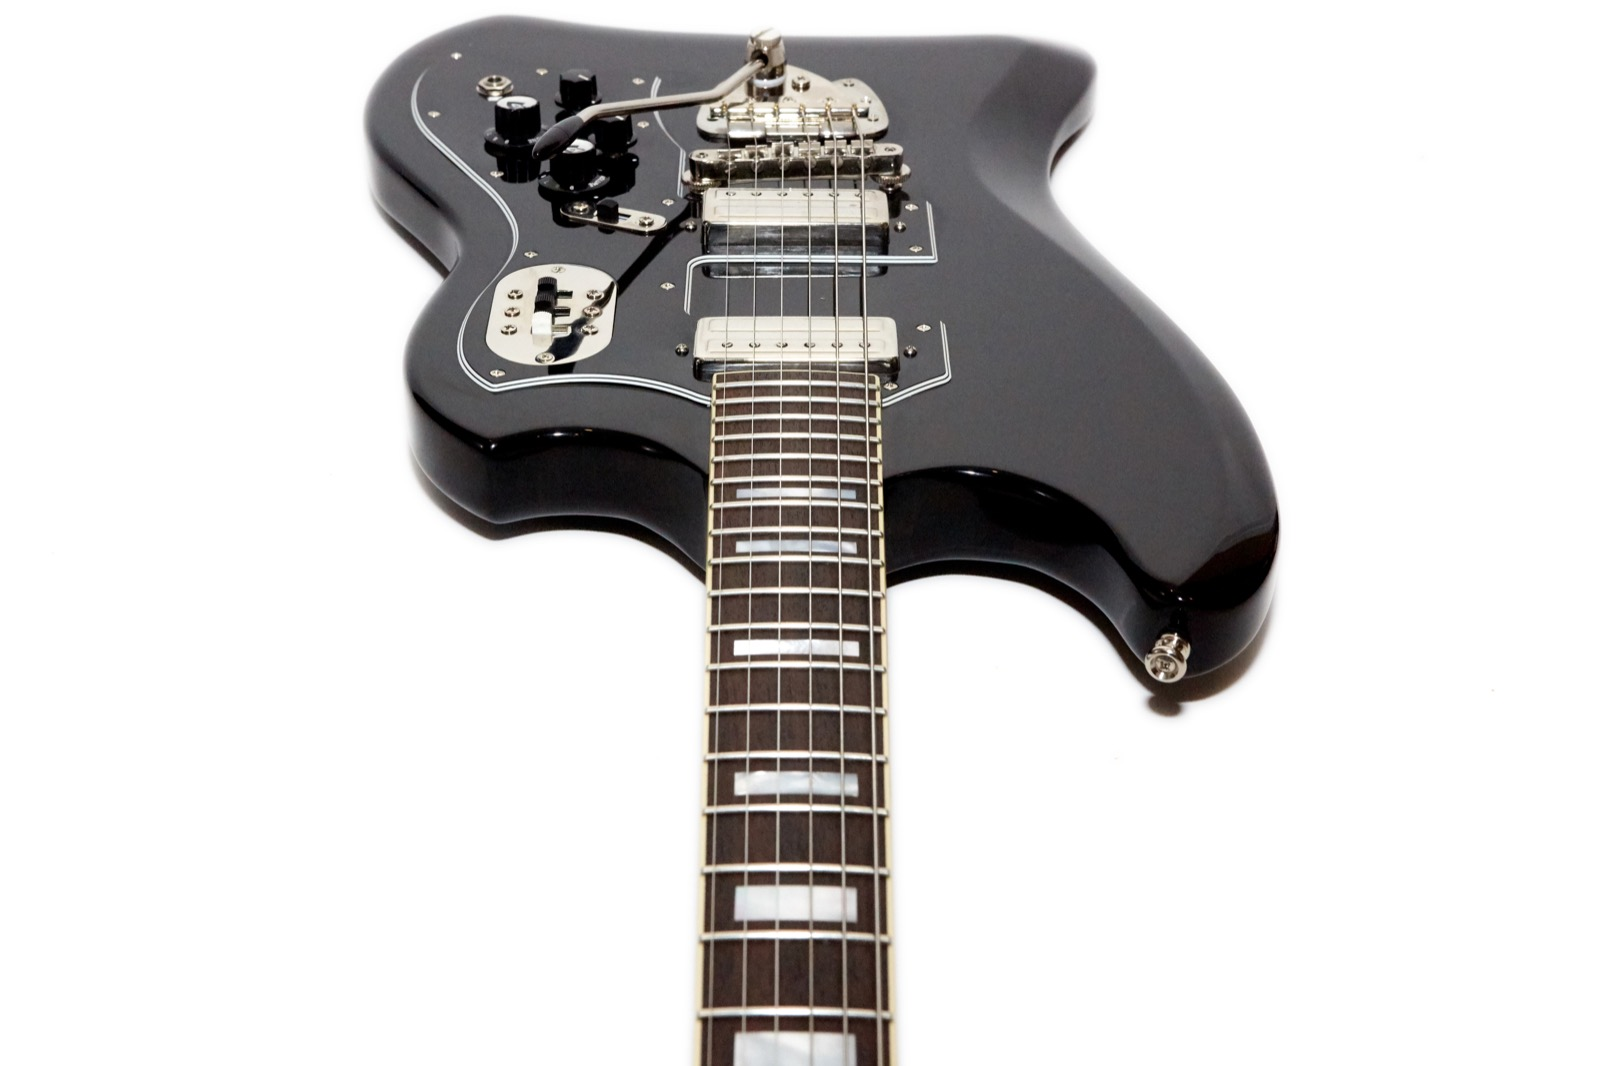 Guild Newark Street S200 T Bird Gads Ramblings Magnetic Pickup Combined Wiring And Pots Telecaster Guitar Forum If Youve Ever Wondered How A Company Resurrects Model Sometimes Theres More To It Than Just Having Old Documents Build From